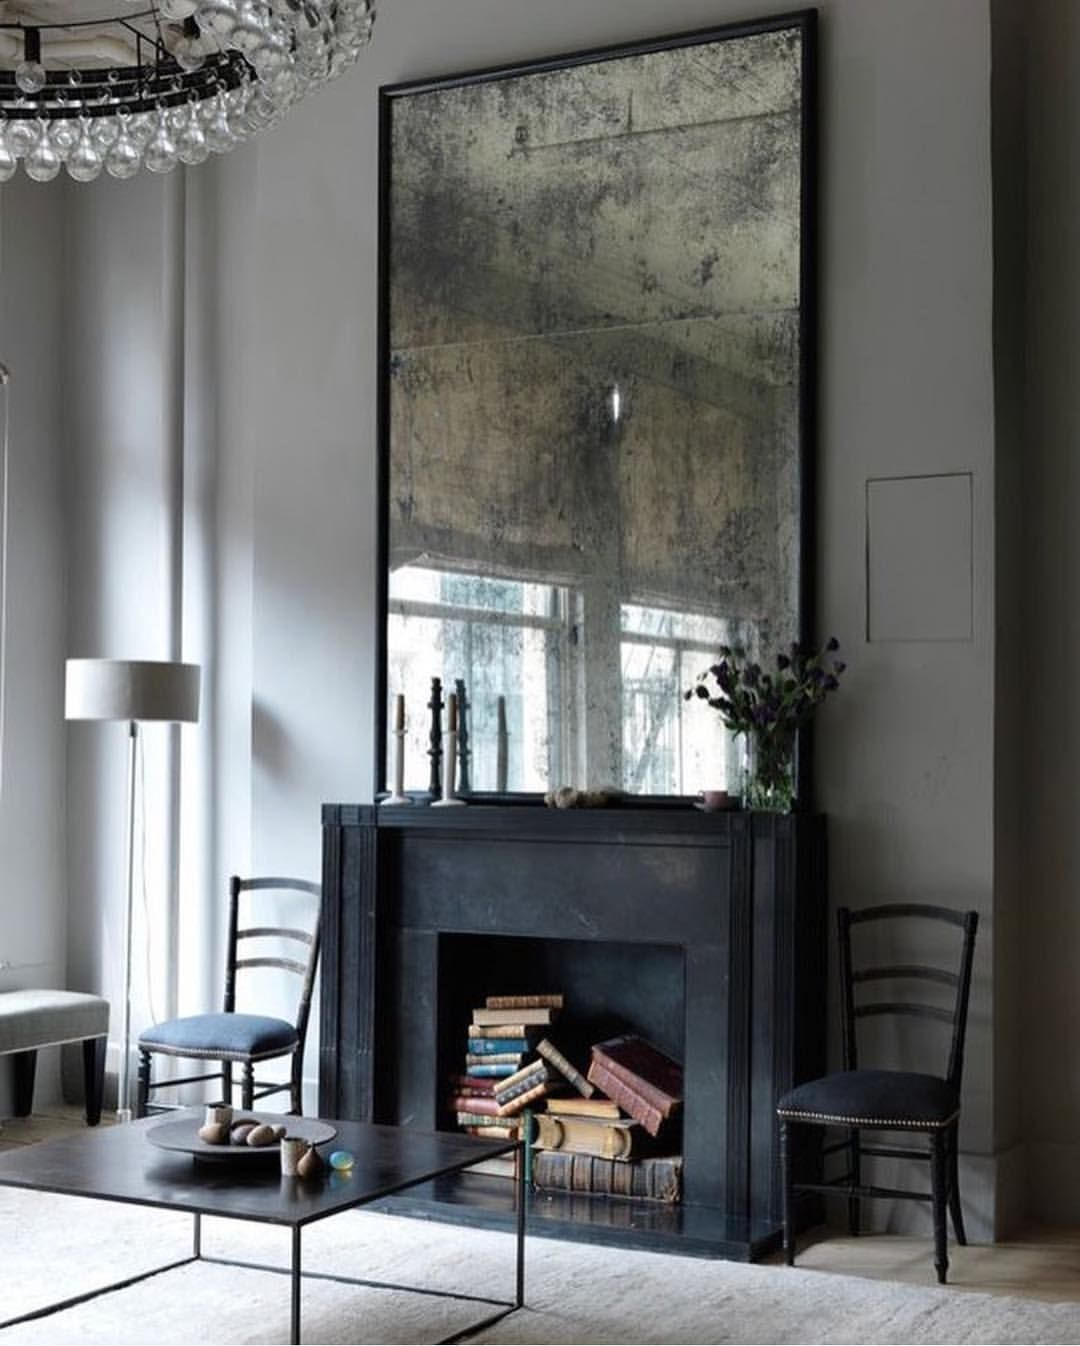 Pin by veiled visage on gothic home interiors pinterest